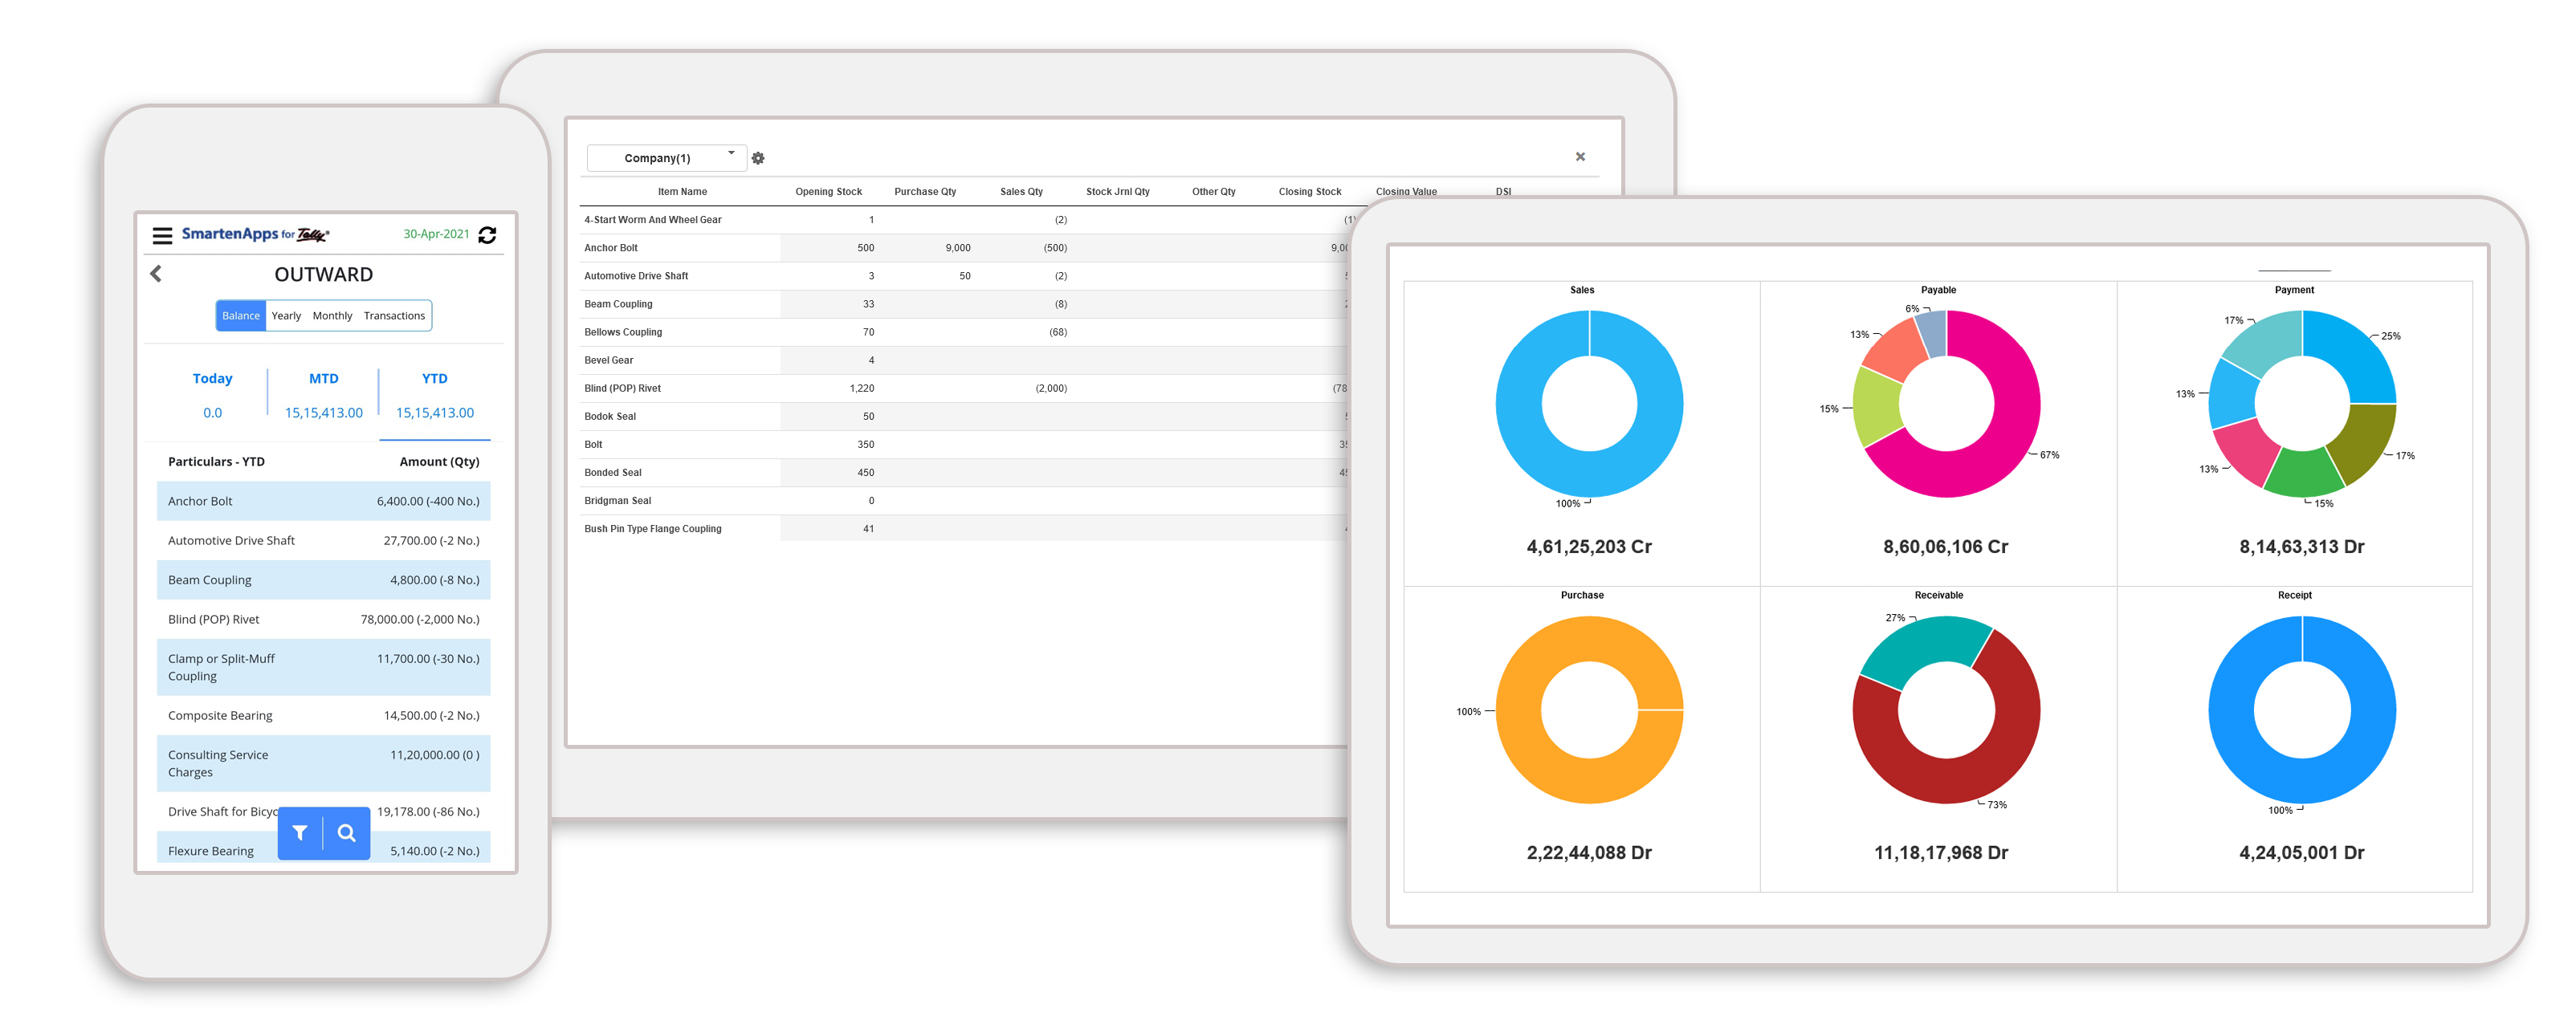 screenshot-tally-users-can-manage-results-with-analytics-and-ally-kpi-key-performance-indicators